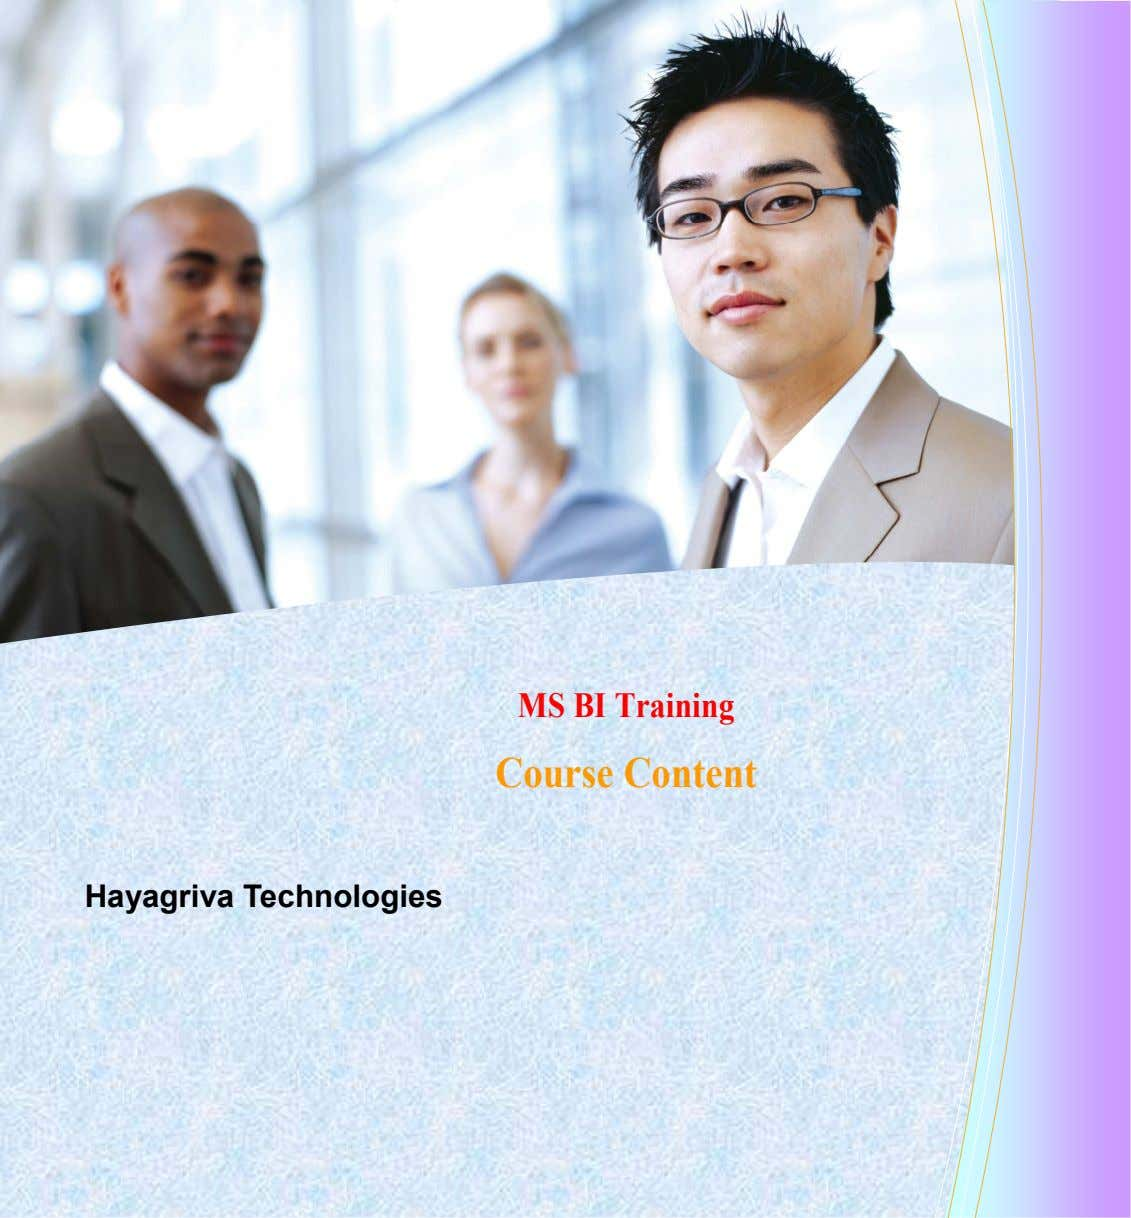 MS BI Training Course Content Hayagriva Technologies